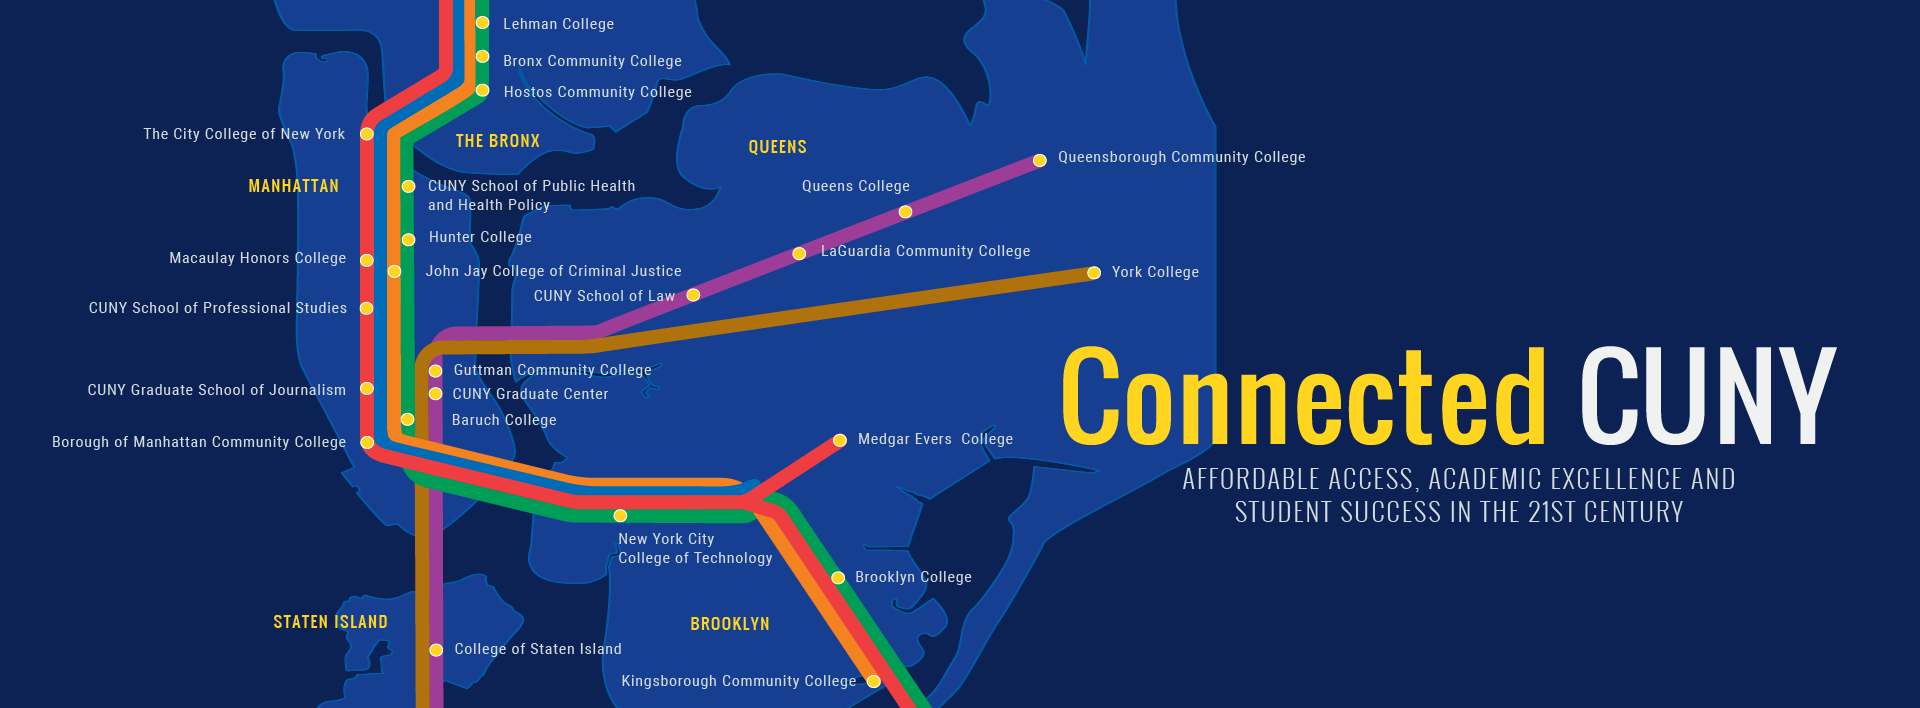 connected cuny 21st century graphic